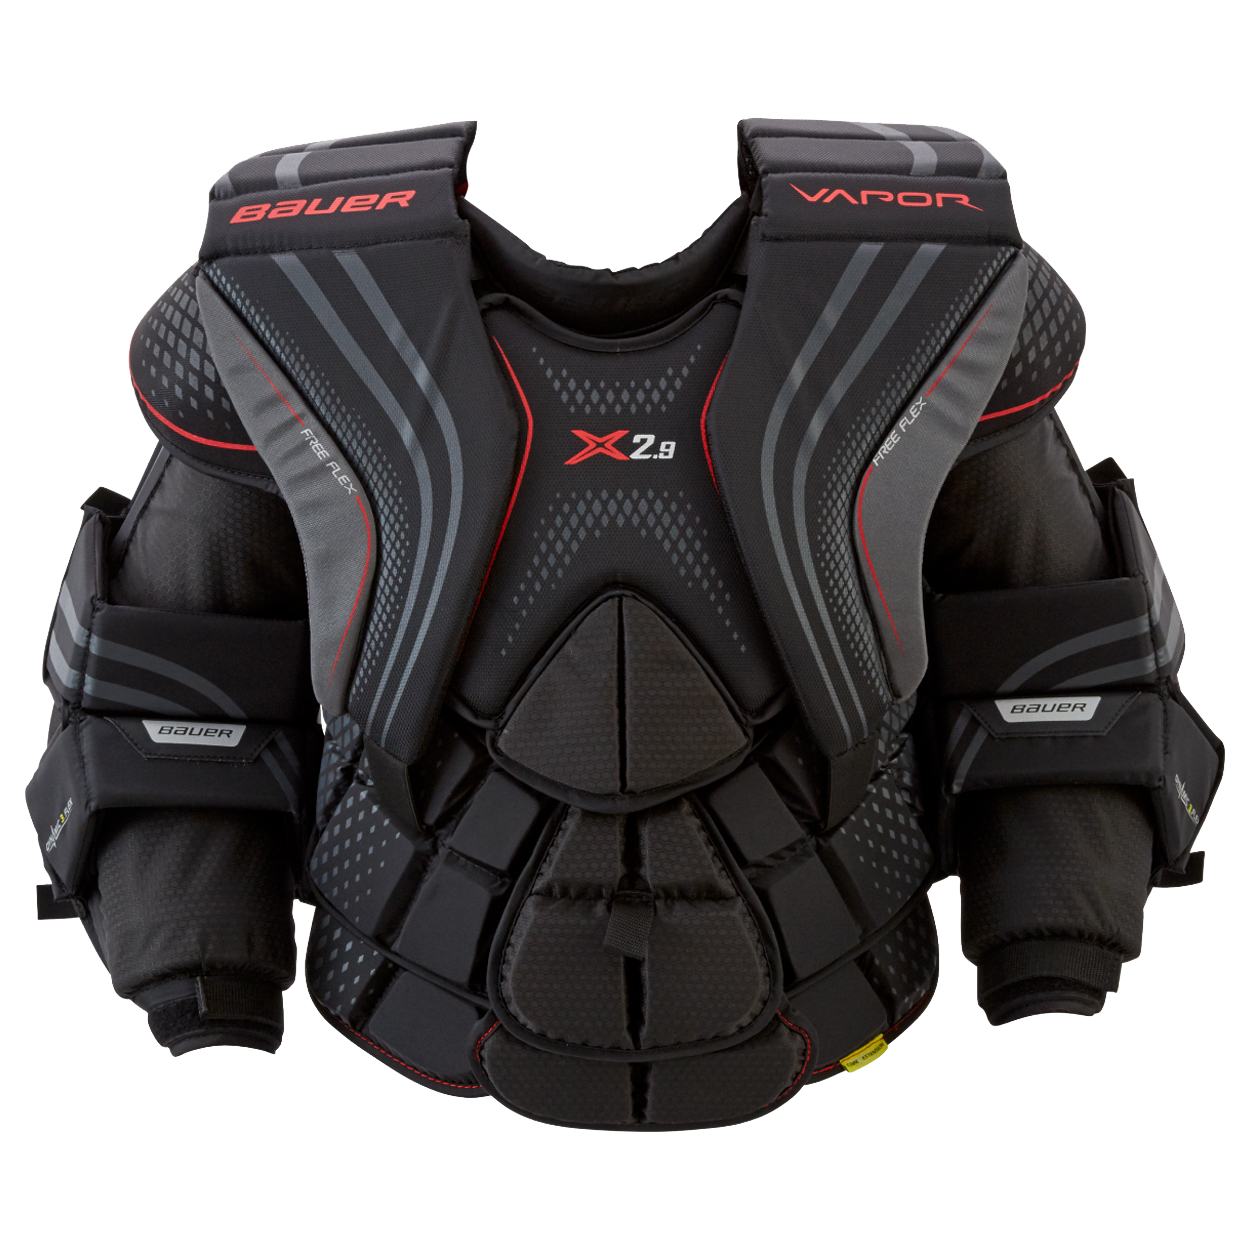 Vapor X2.9 Chest Protector Senior